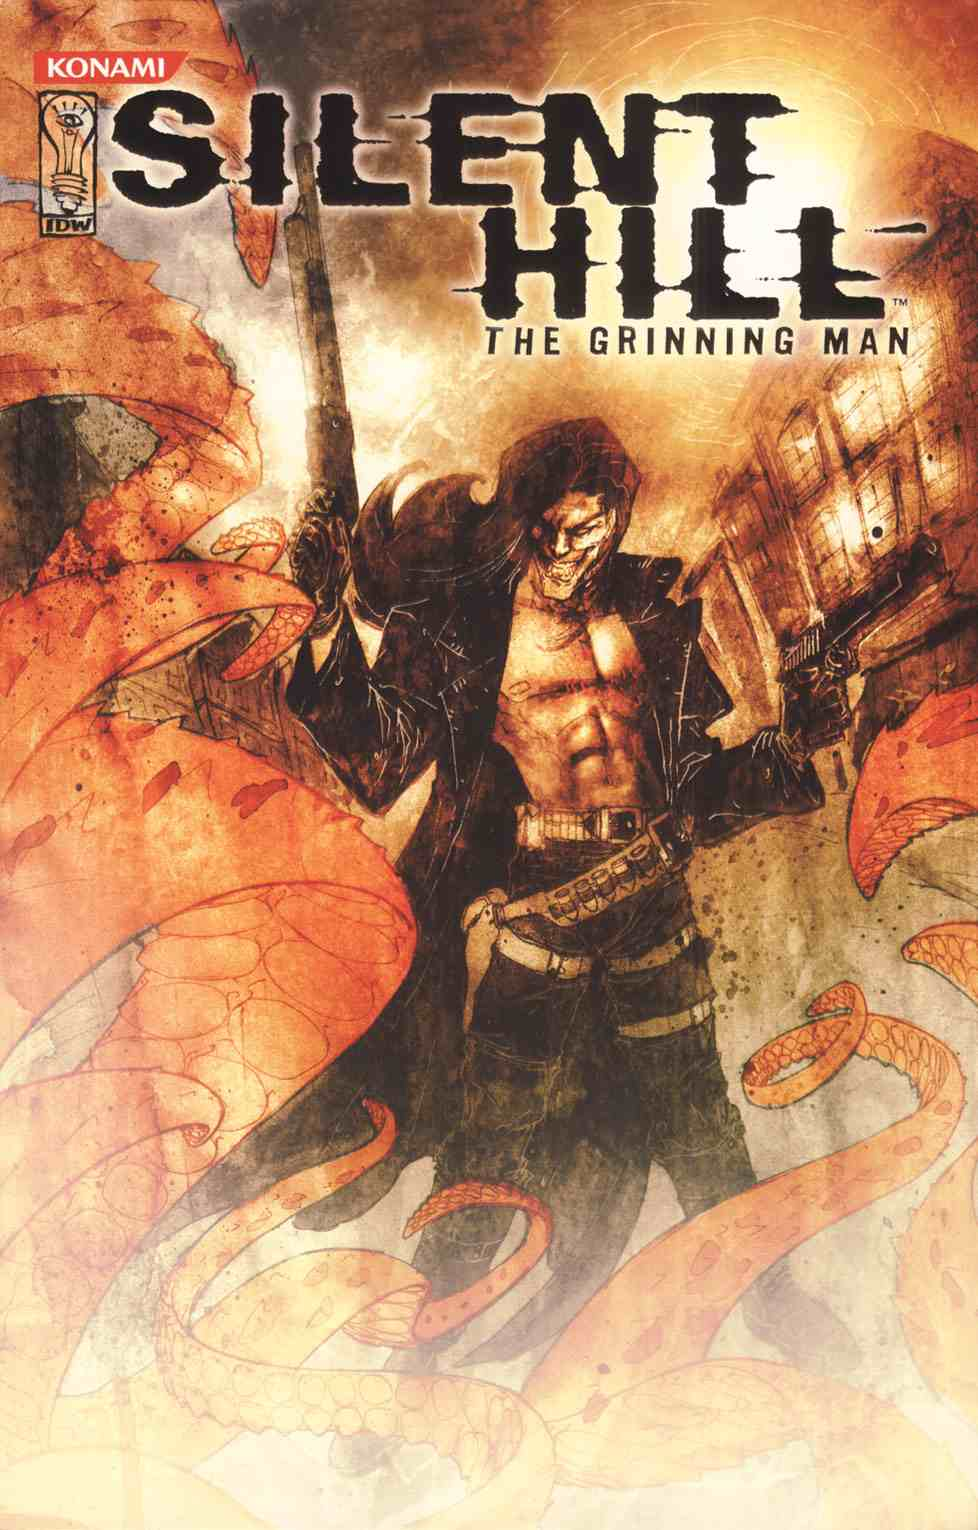 Read online Silent Hill: The Grinning Man comic -  Issue # Full - 1